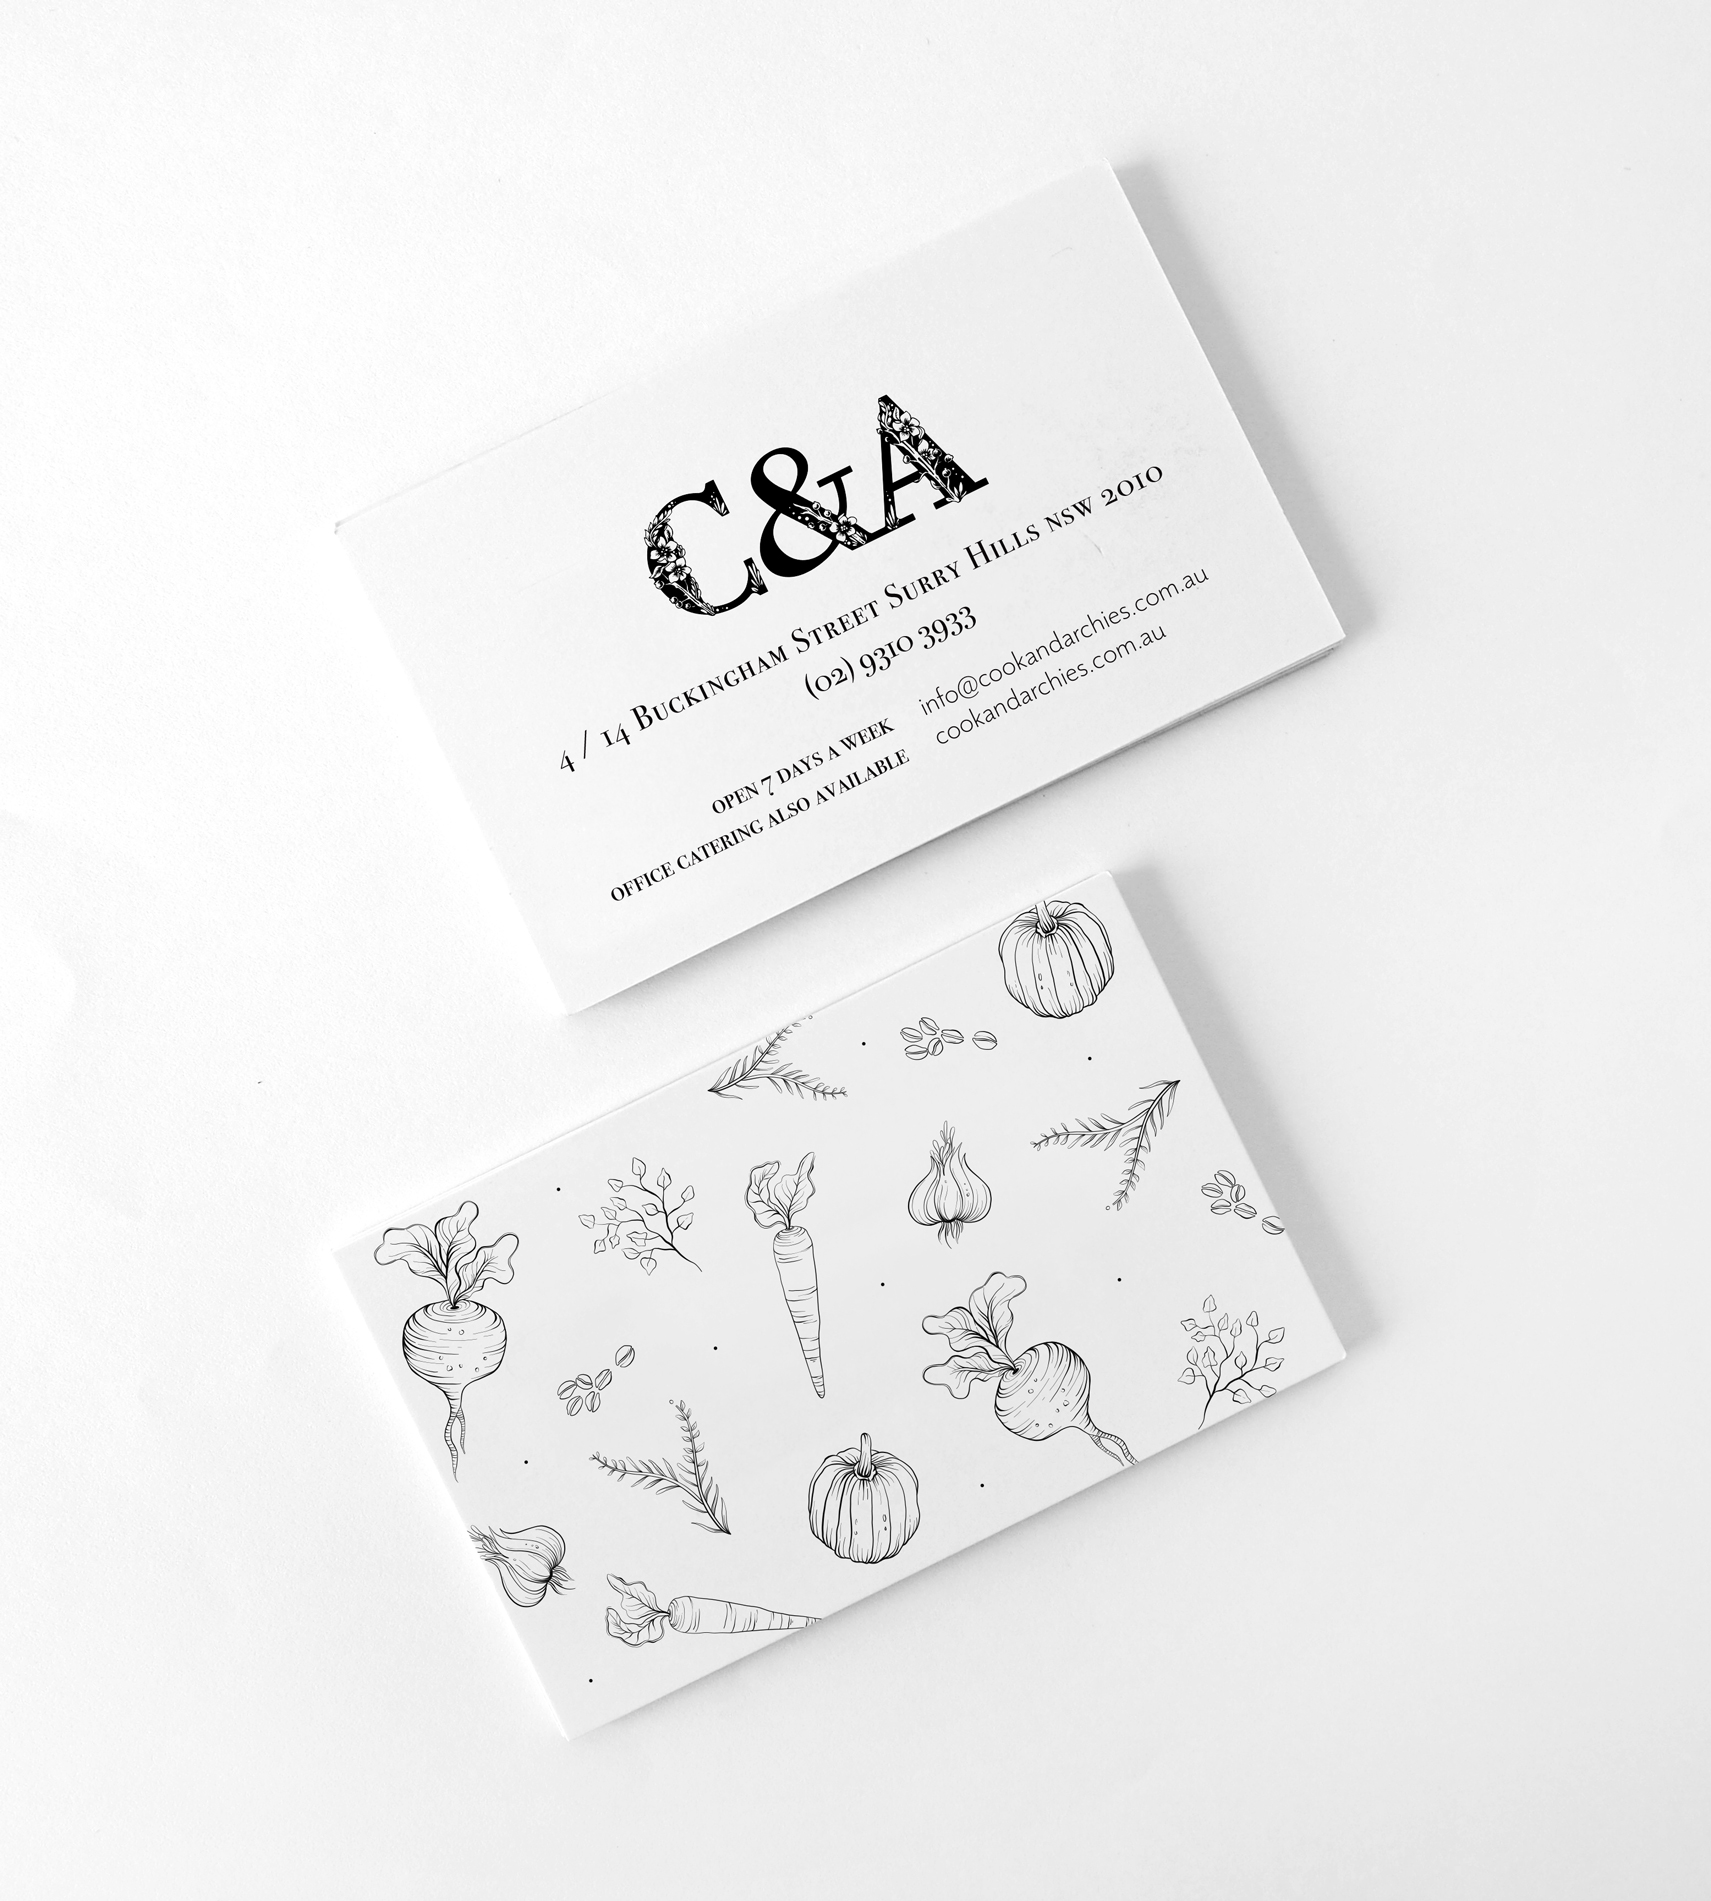 Cook and Archies business cards